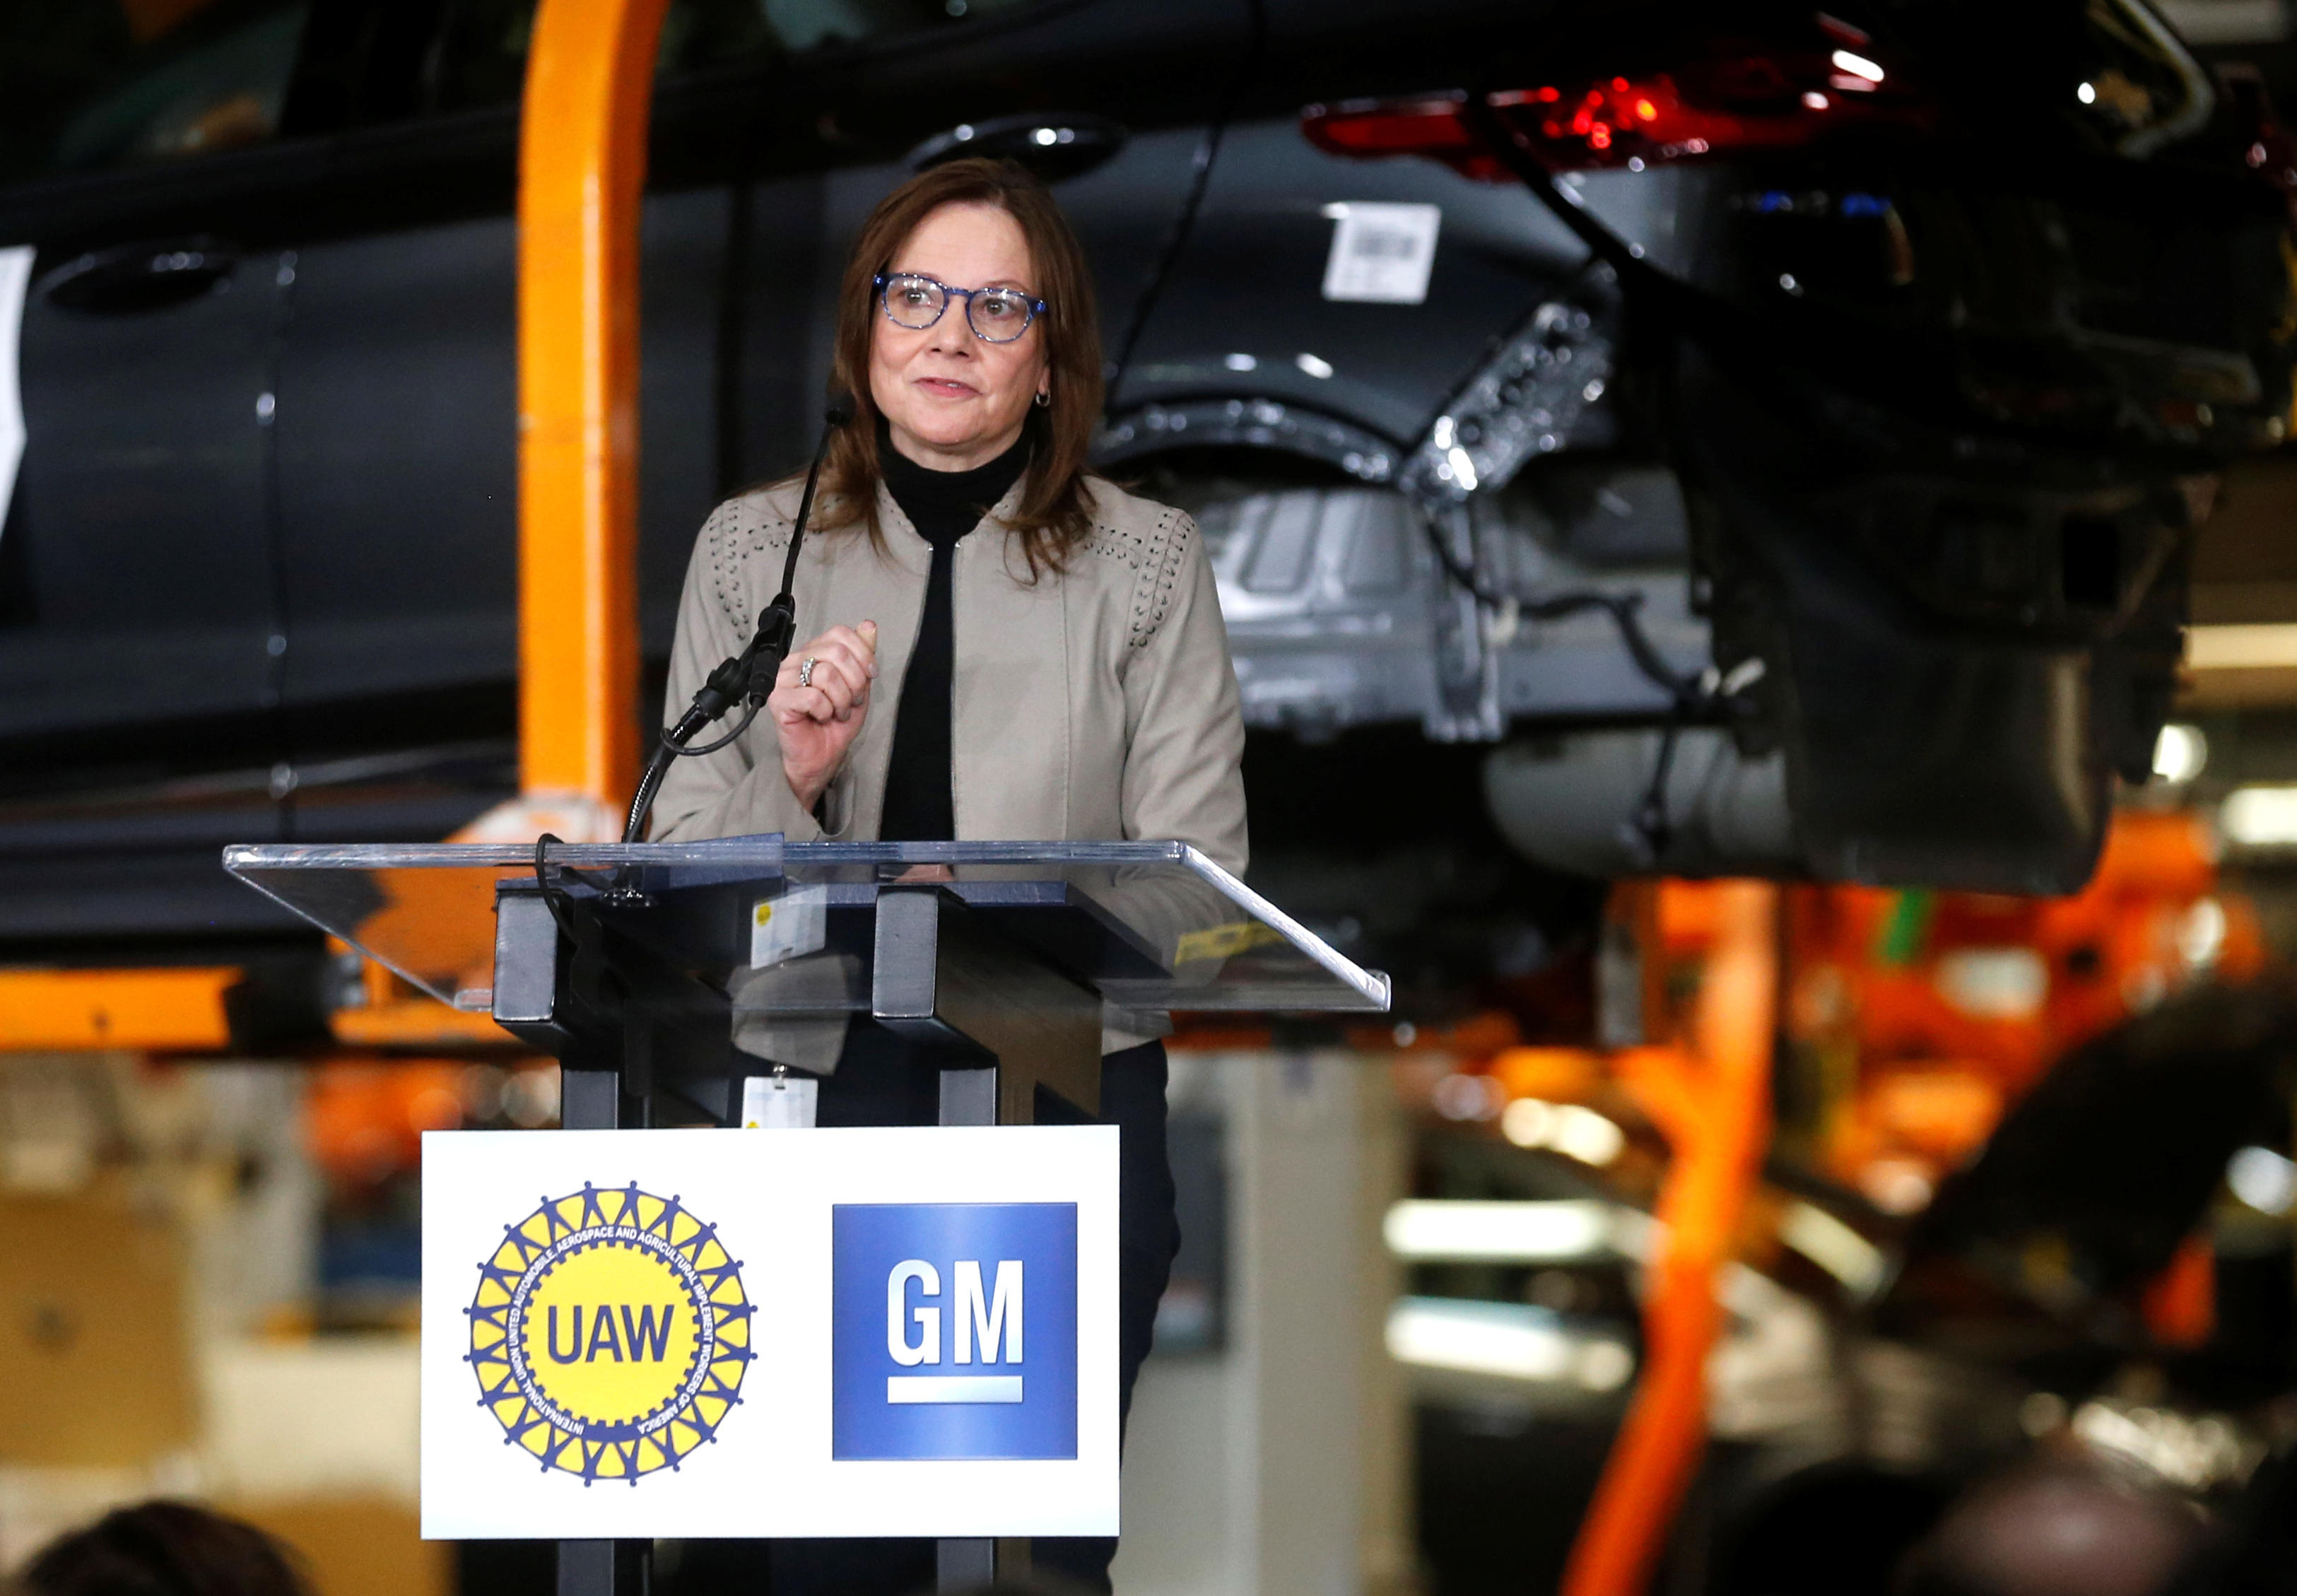 ab4be3a0f5dd GM says it will invest $300 million in its Orion plant after Trump criticism